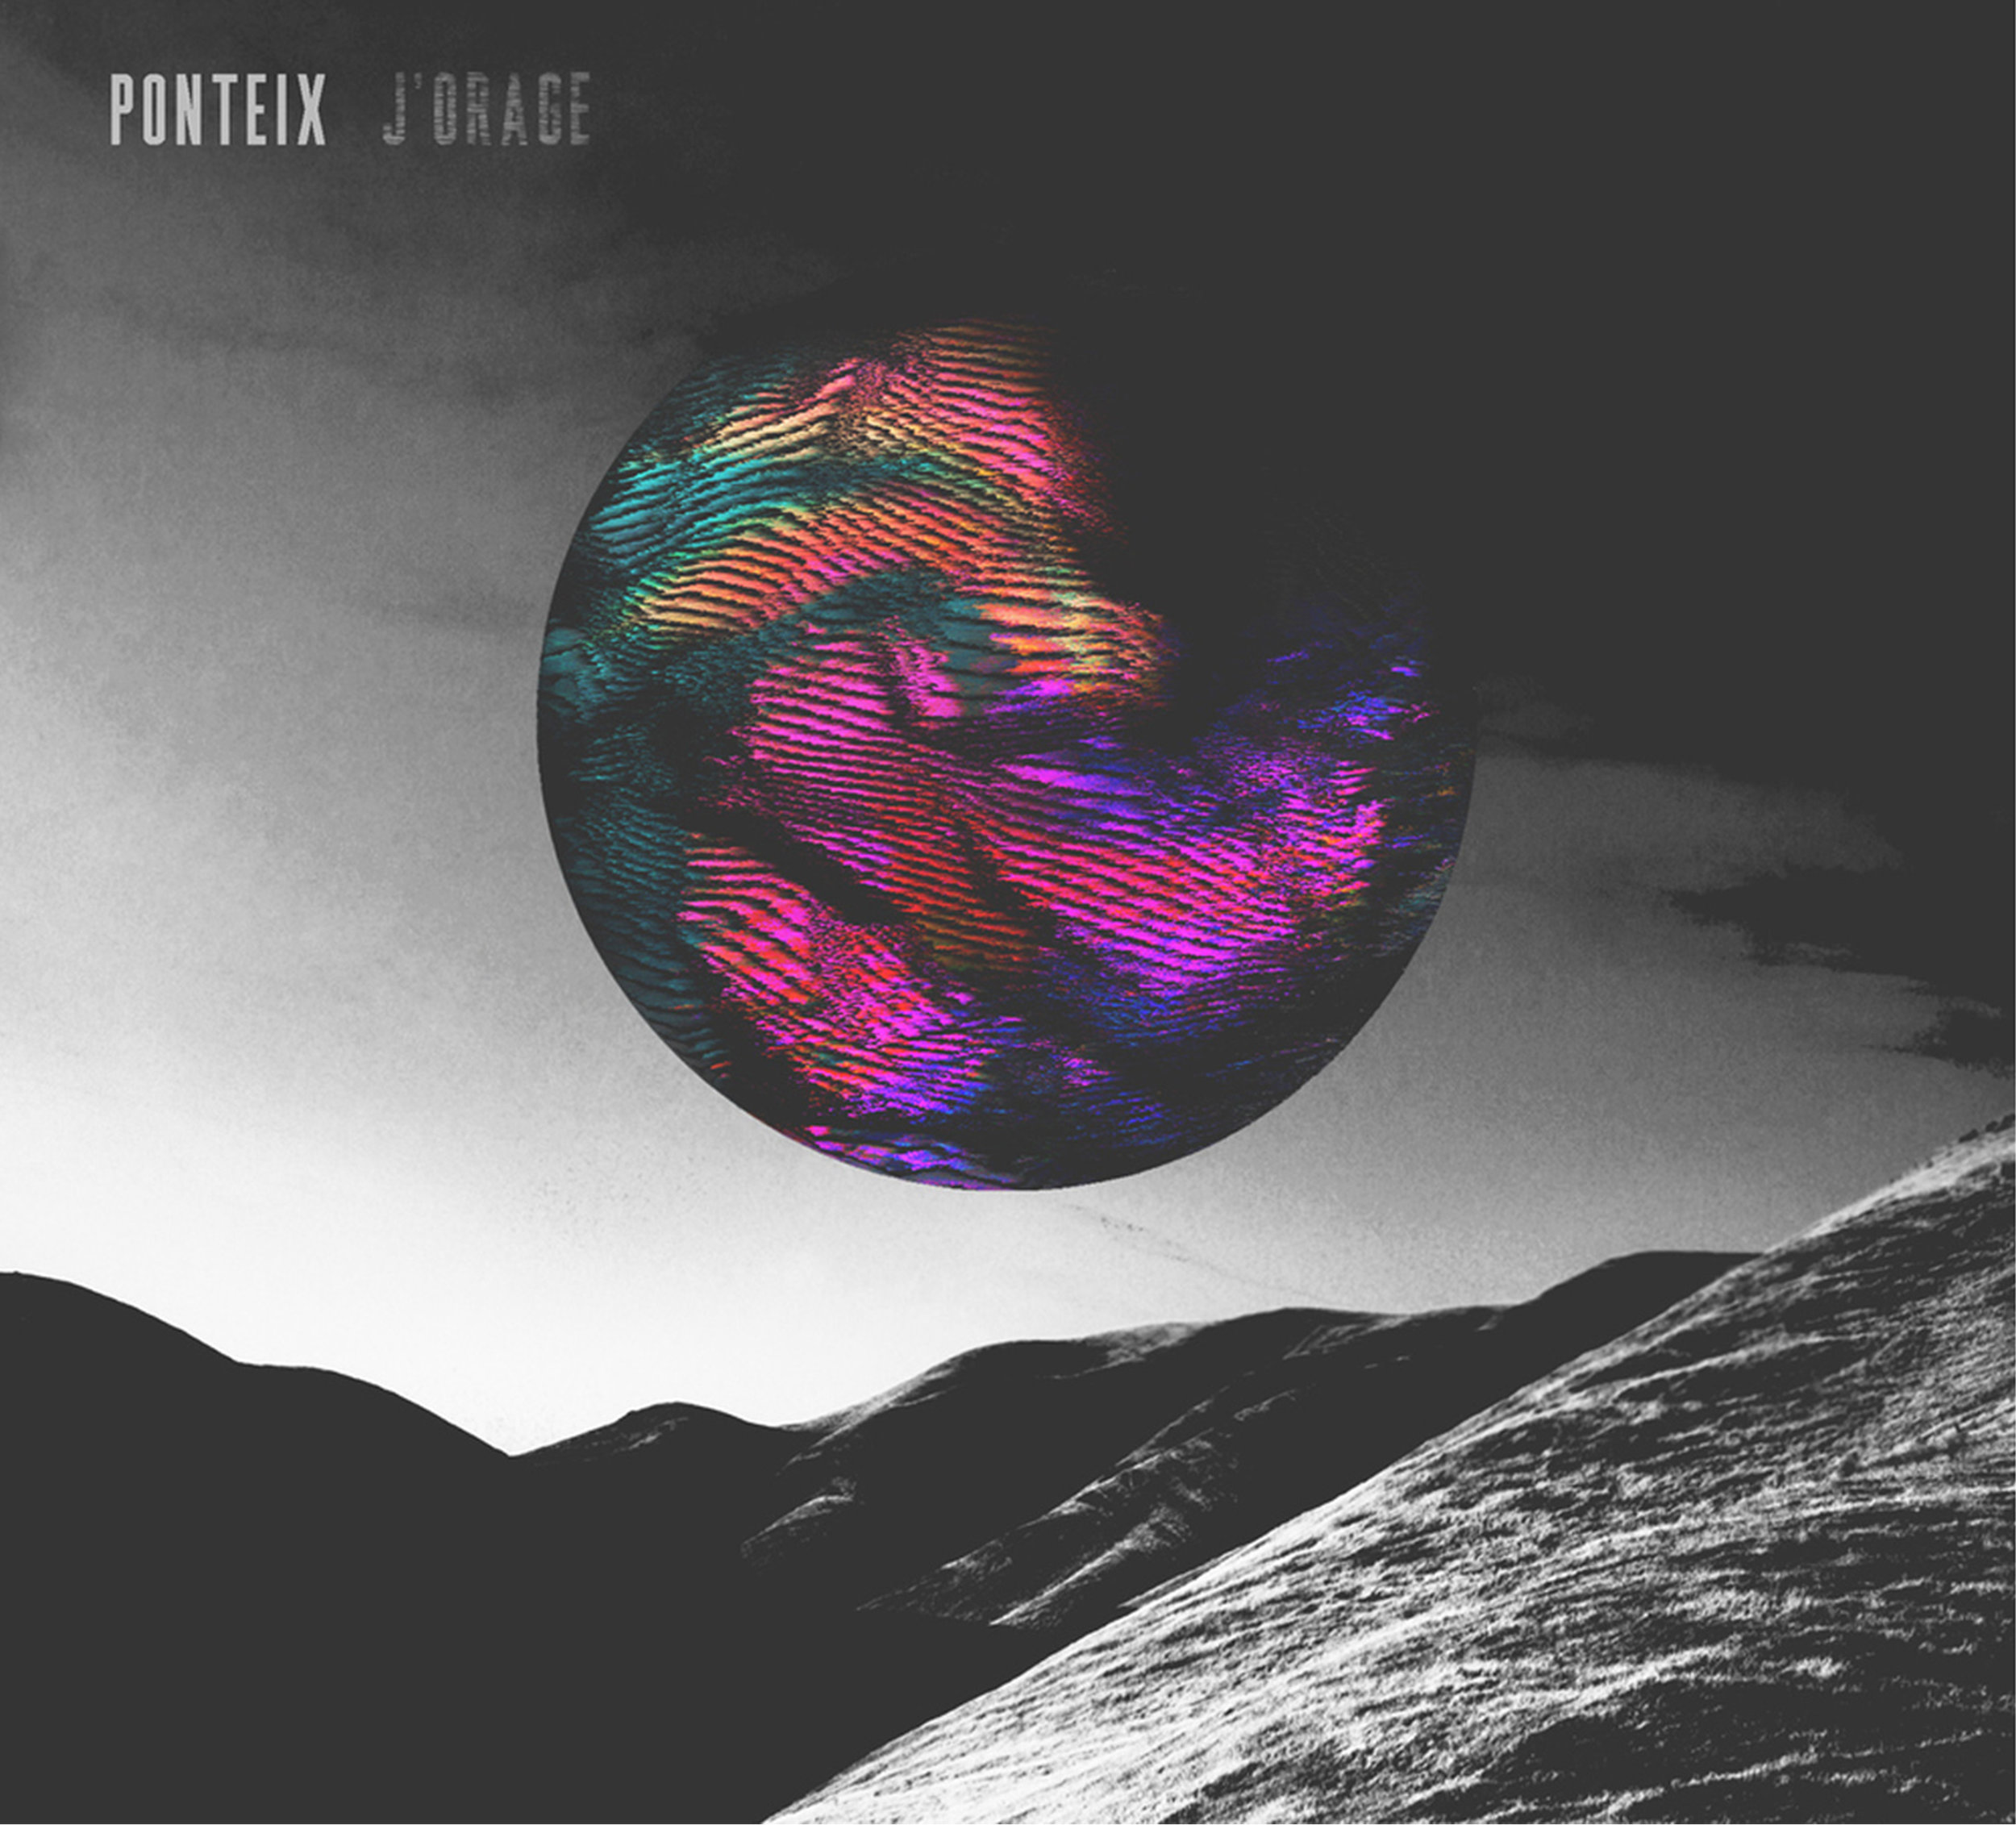 PONTEIX  (Saskatoon, SK) - Artwork and packaging design for J'Orage, the first EP by Ponteix